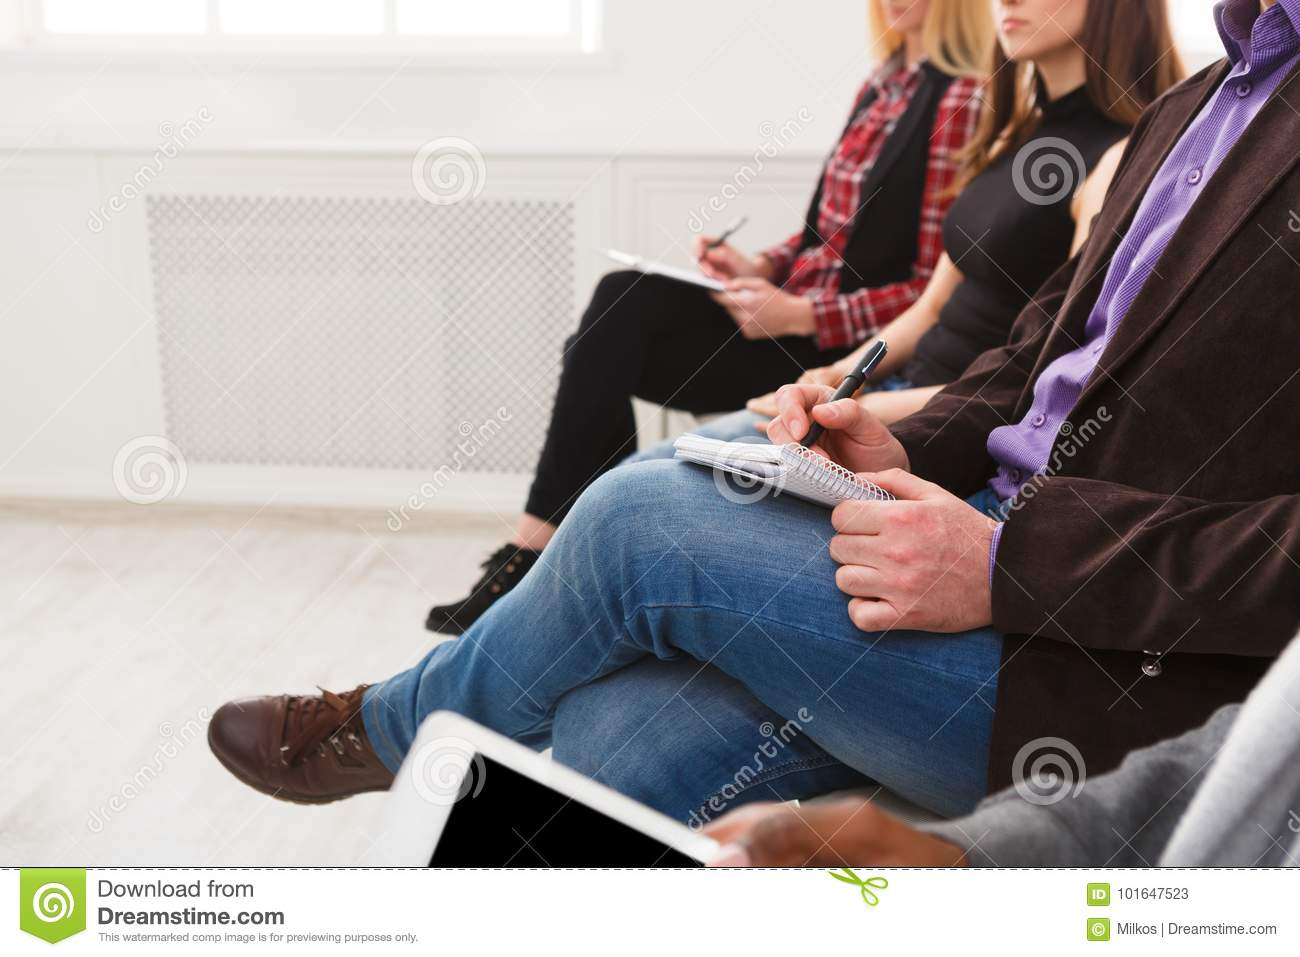 Group of people sitting at seminar, copy space